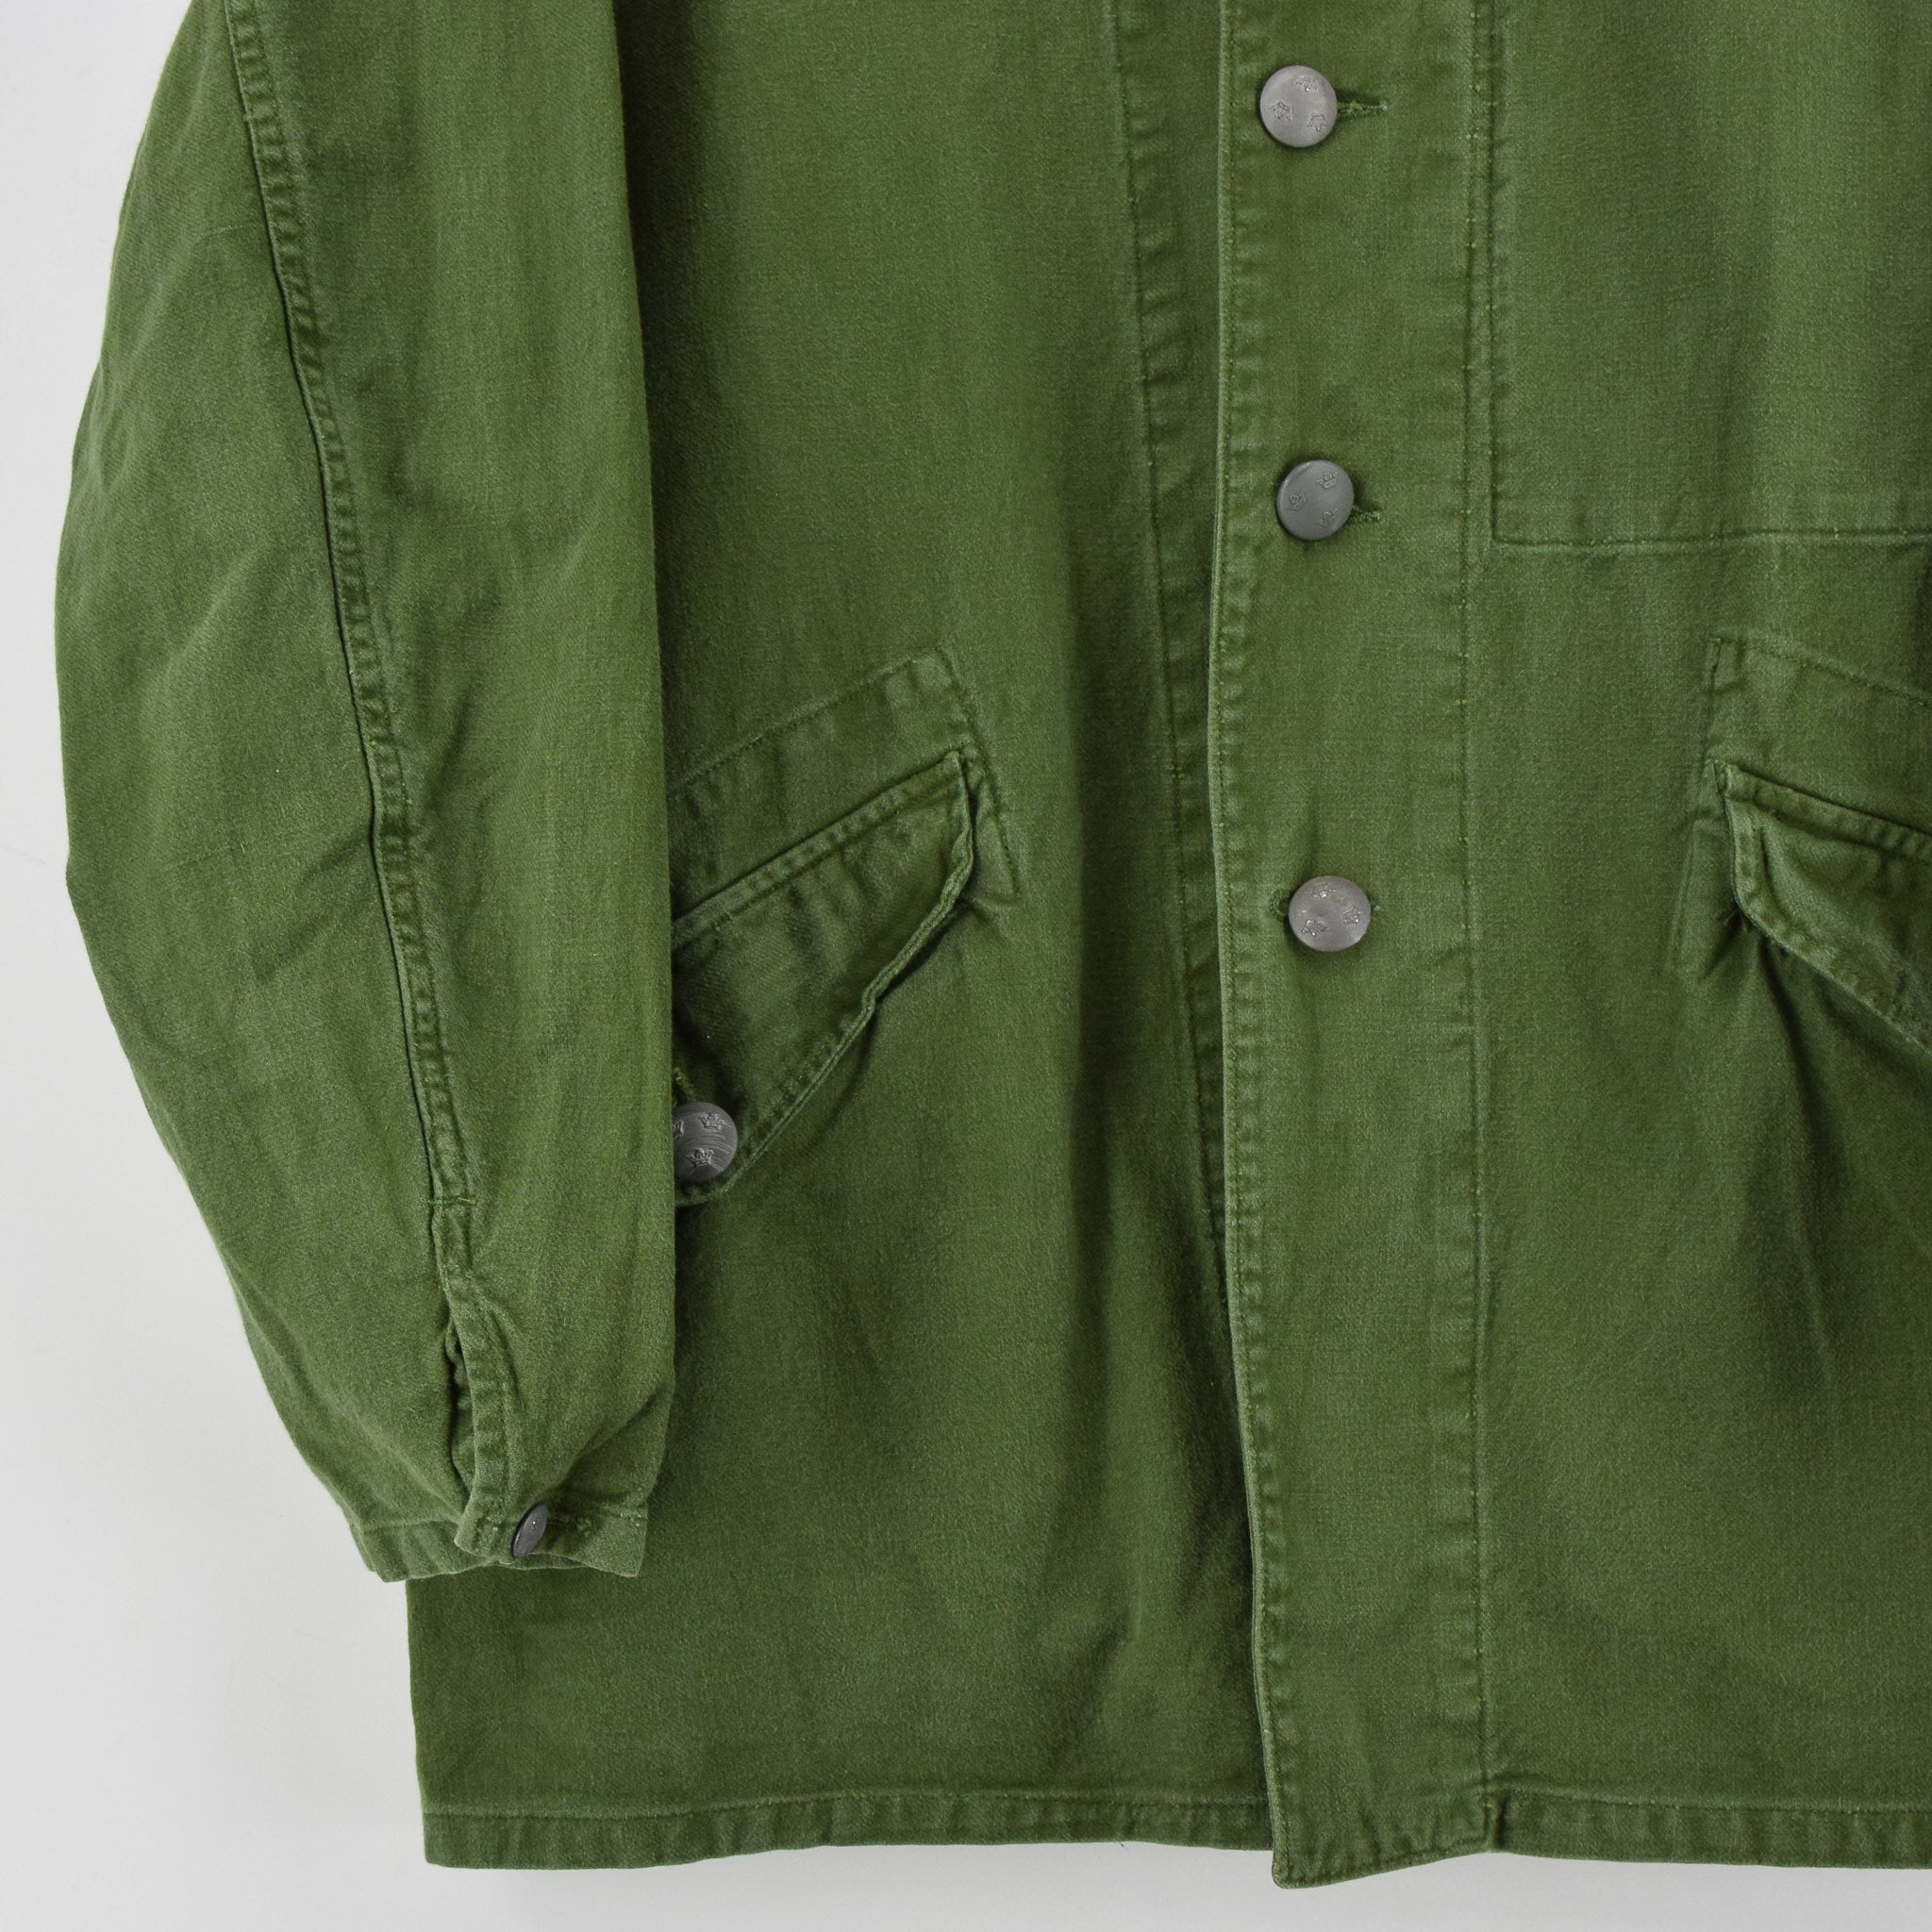 Vintage 60s Swedish Military Field Jacket Worker Style Distressed Green S / M front hem